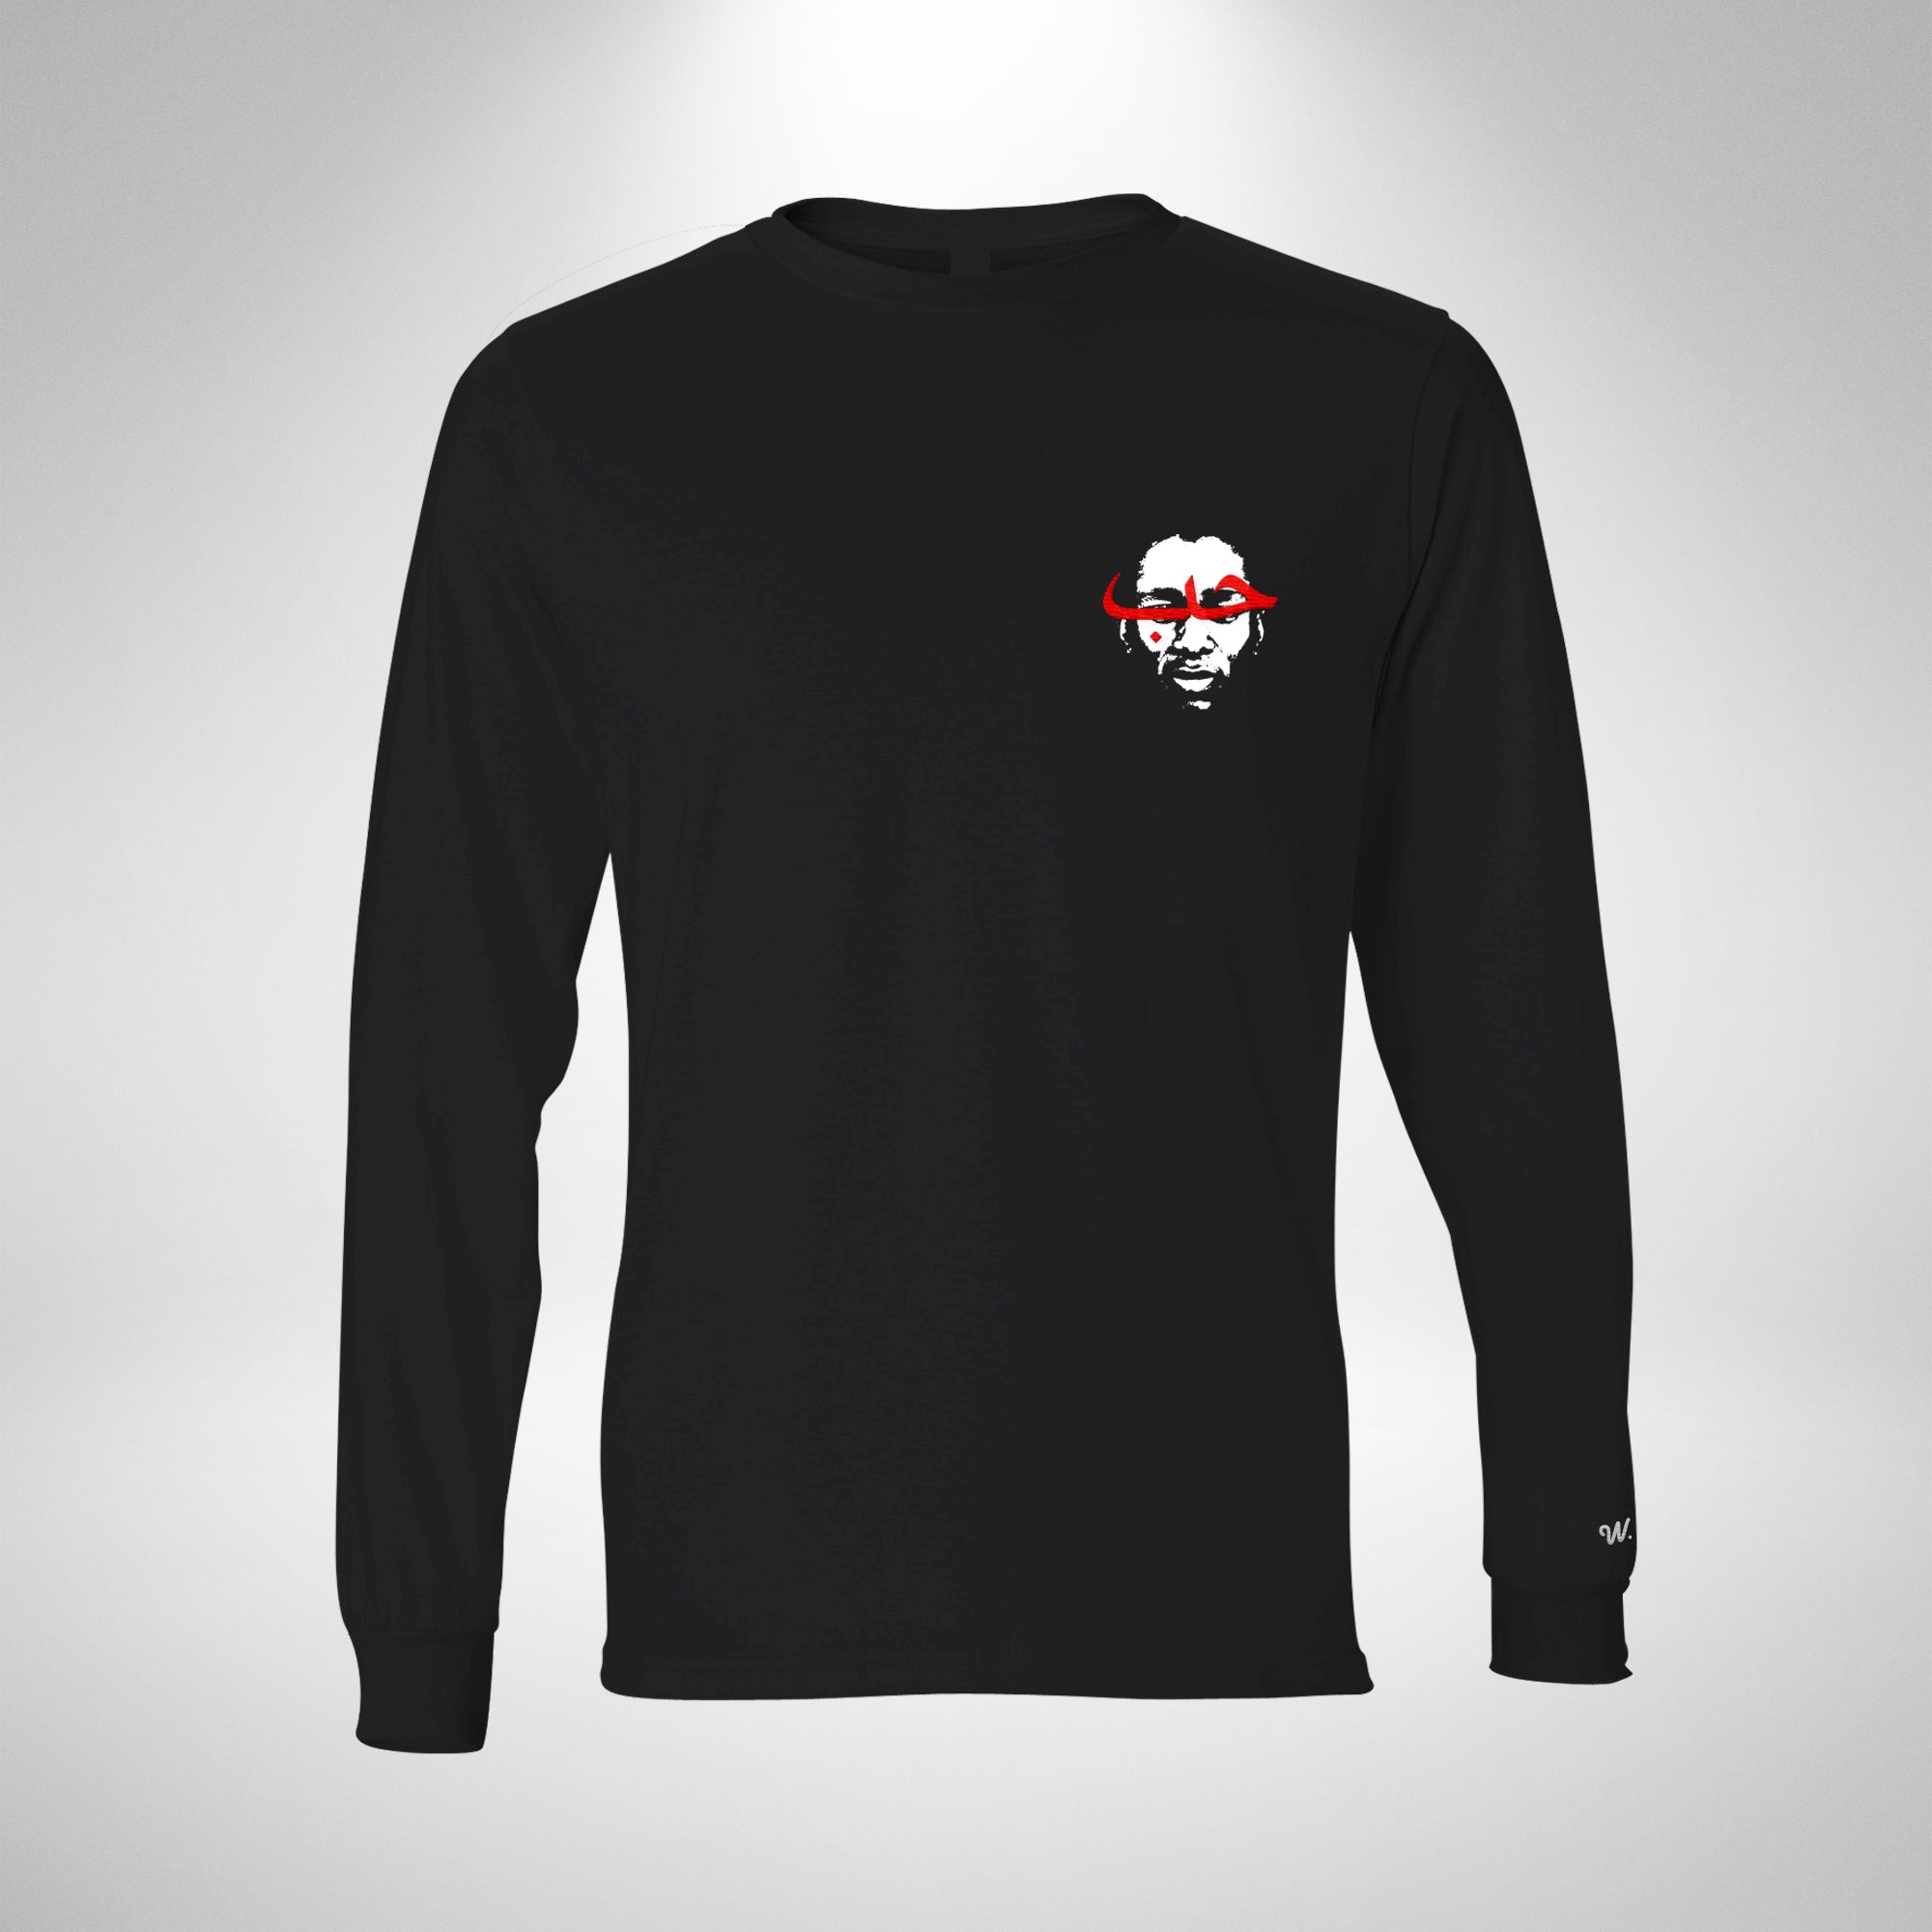 Love Long Sleeve Cotton Tee